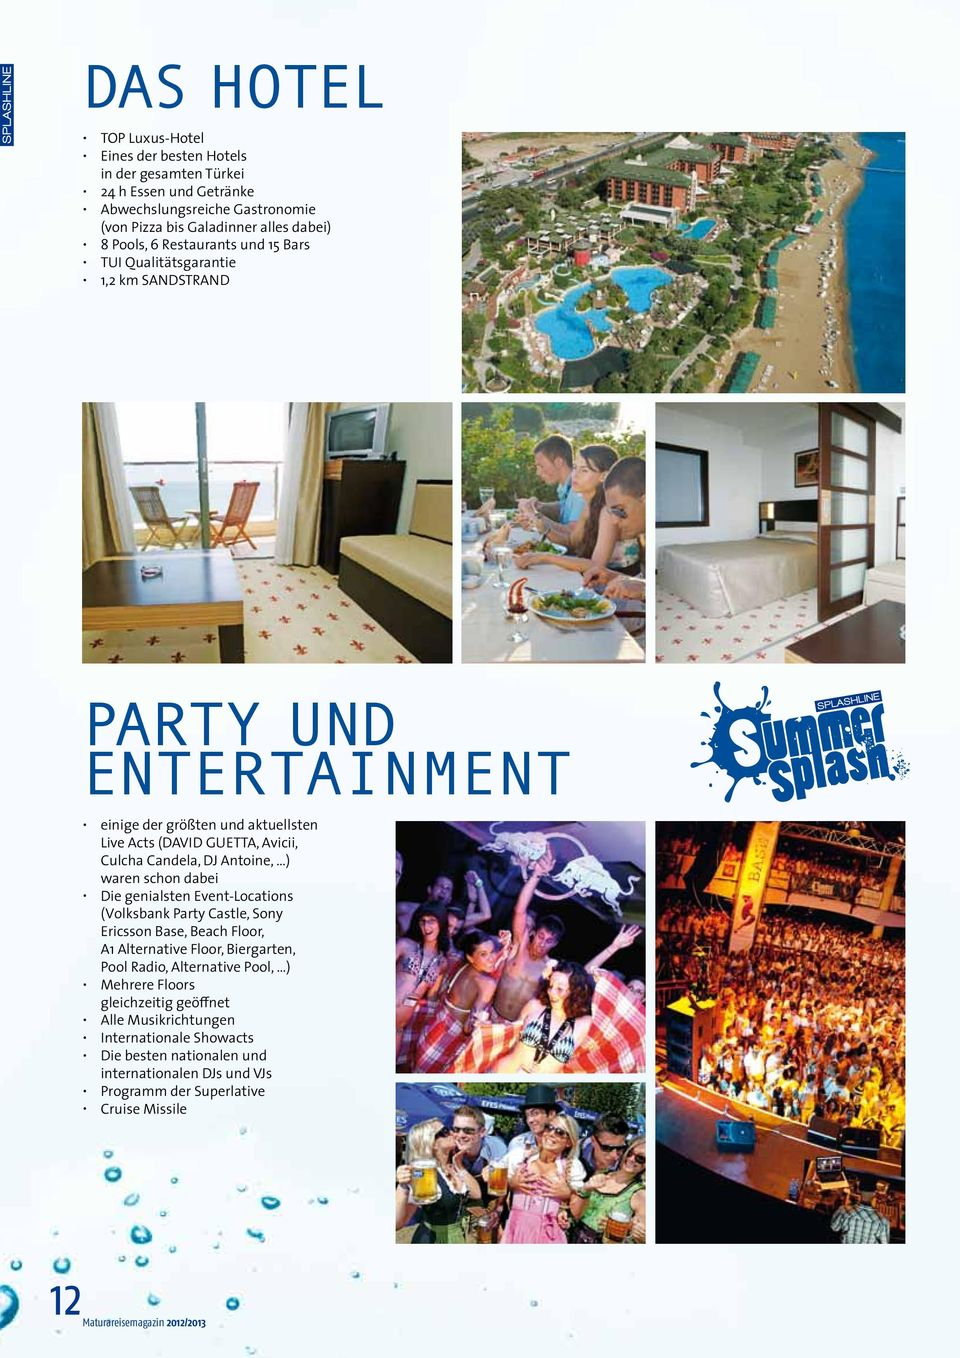 waren schon dabei Die genialsten Event-Locations (Volksbank Party Castle, Sony Ericsson Base, Beach Floor, A1 Alternative Floor, Biergarten, Pool Radio, Alternative Pool, ) Mehrere